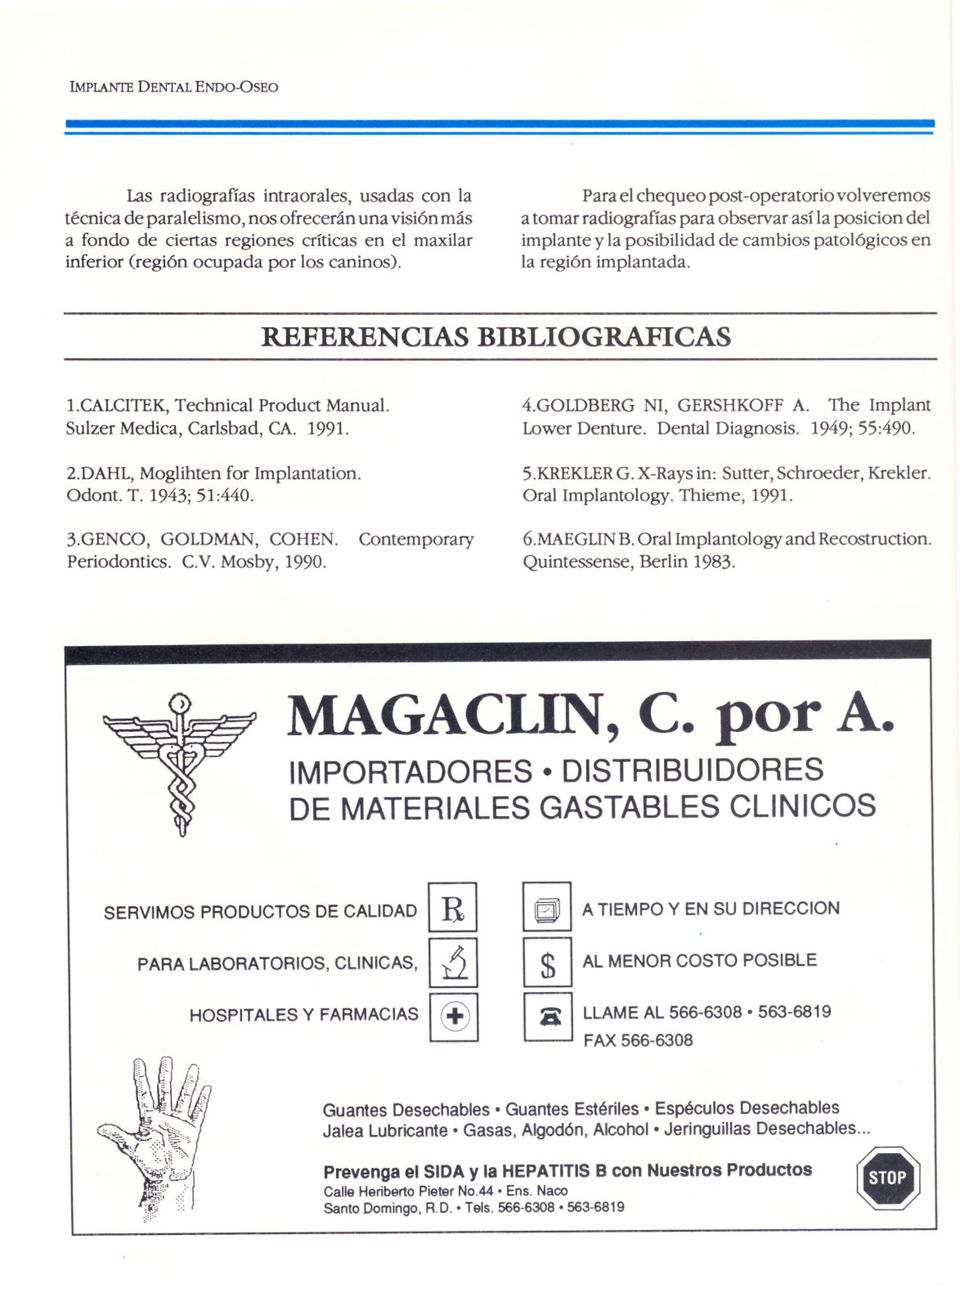 REFERENCIAS BIBLIOGRAFICAS 1.CALCITEK, Technical Product Manual. Sulzer Medica, Carlsbad, CA. 1991. 4.GOLDBERG NI, GERSHKOFF A. The Implant Lower Denture. Dental Diagnosis. 1949; 55:490. 2.